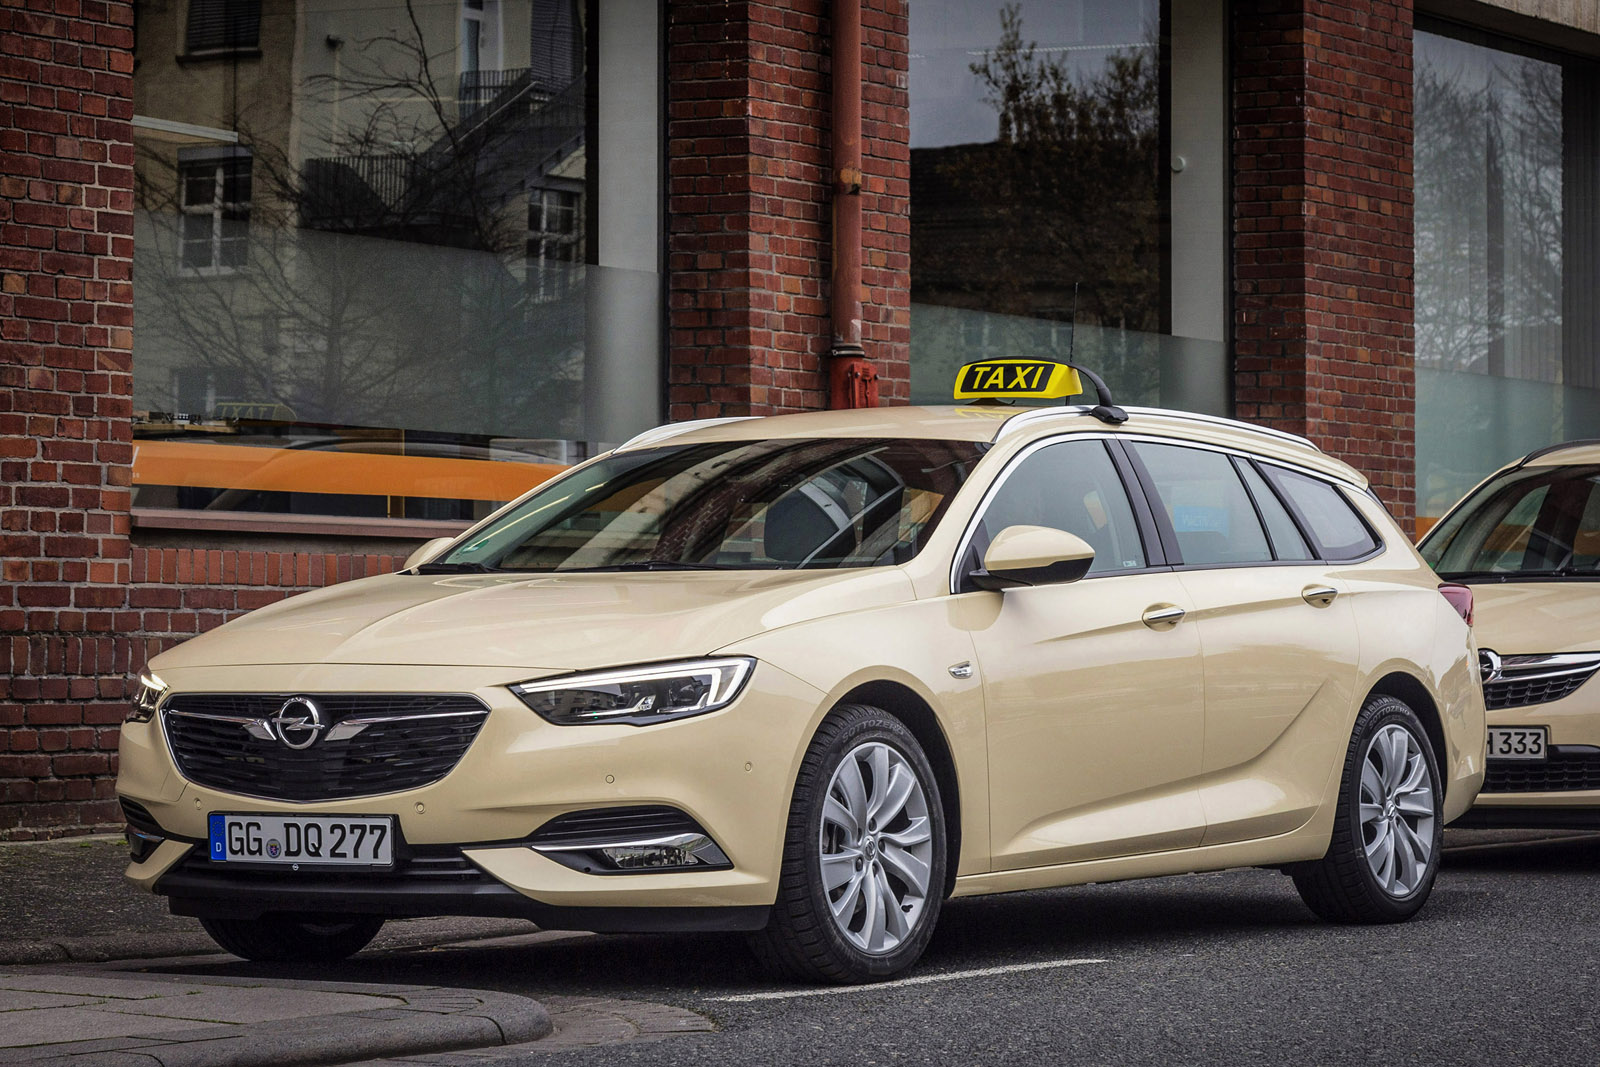 opel insignia tourer makes for a slick lookin 39 taxi carscoops. Black Bedroom Furniture Sets. Home Design Ideas